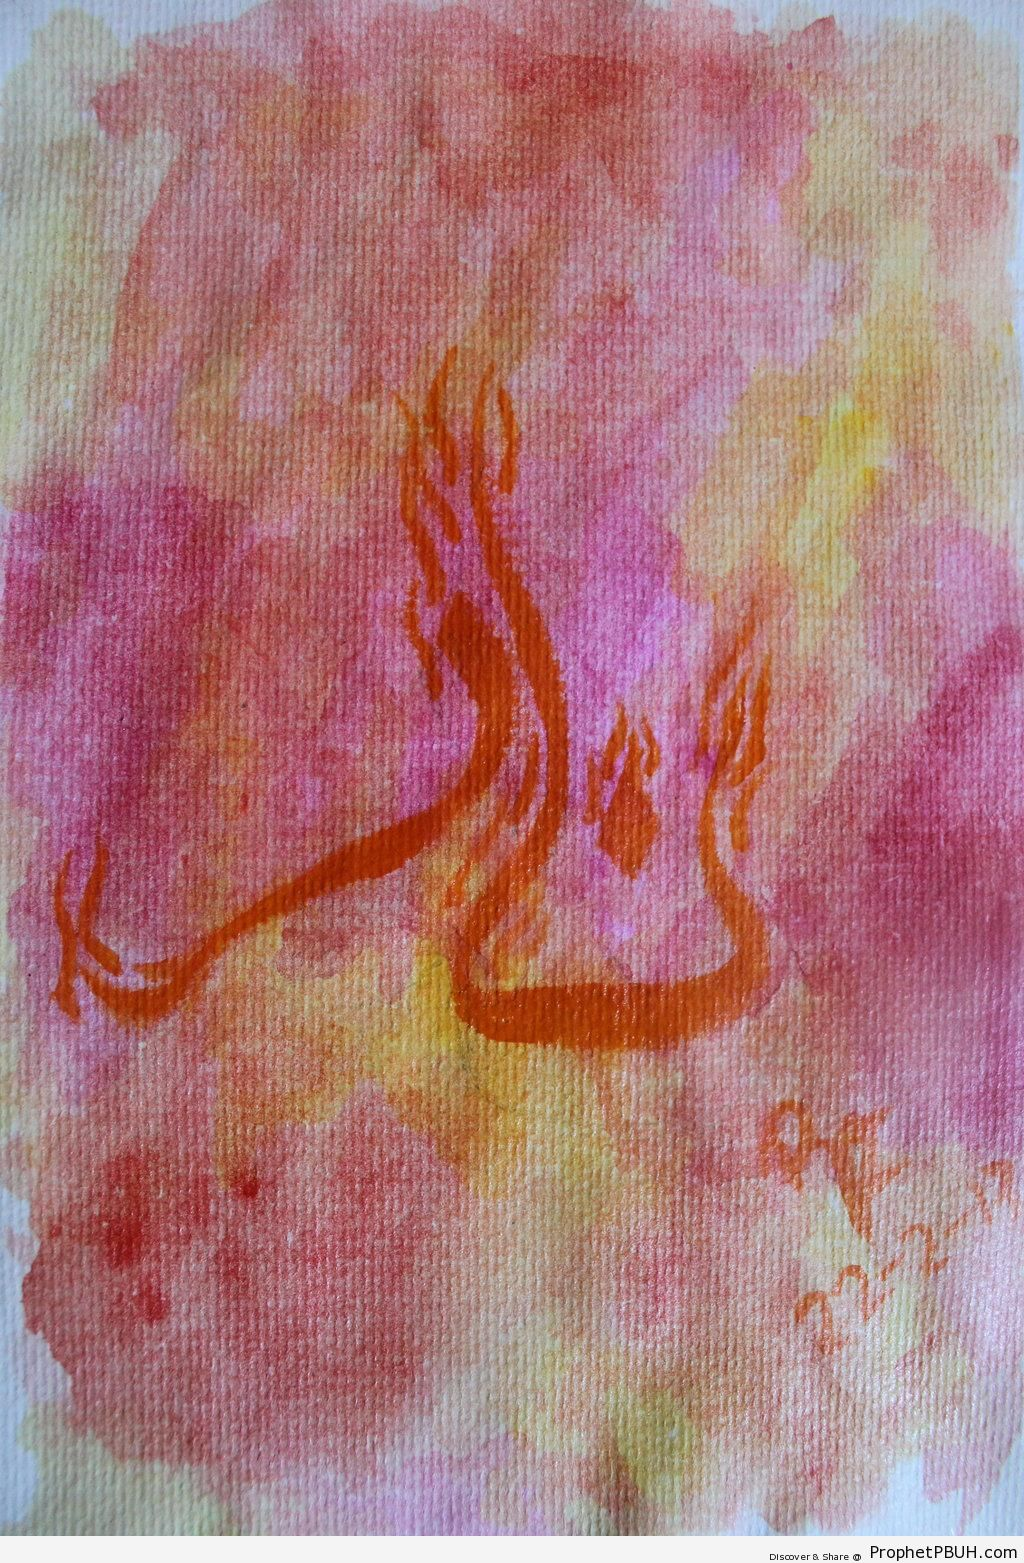 Naar- (Arabic for -Fire-) Calligraphy - Naar (-Fire-) Arabic Word Calligraphy